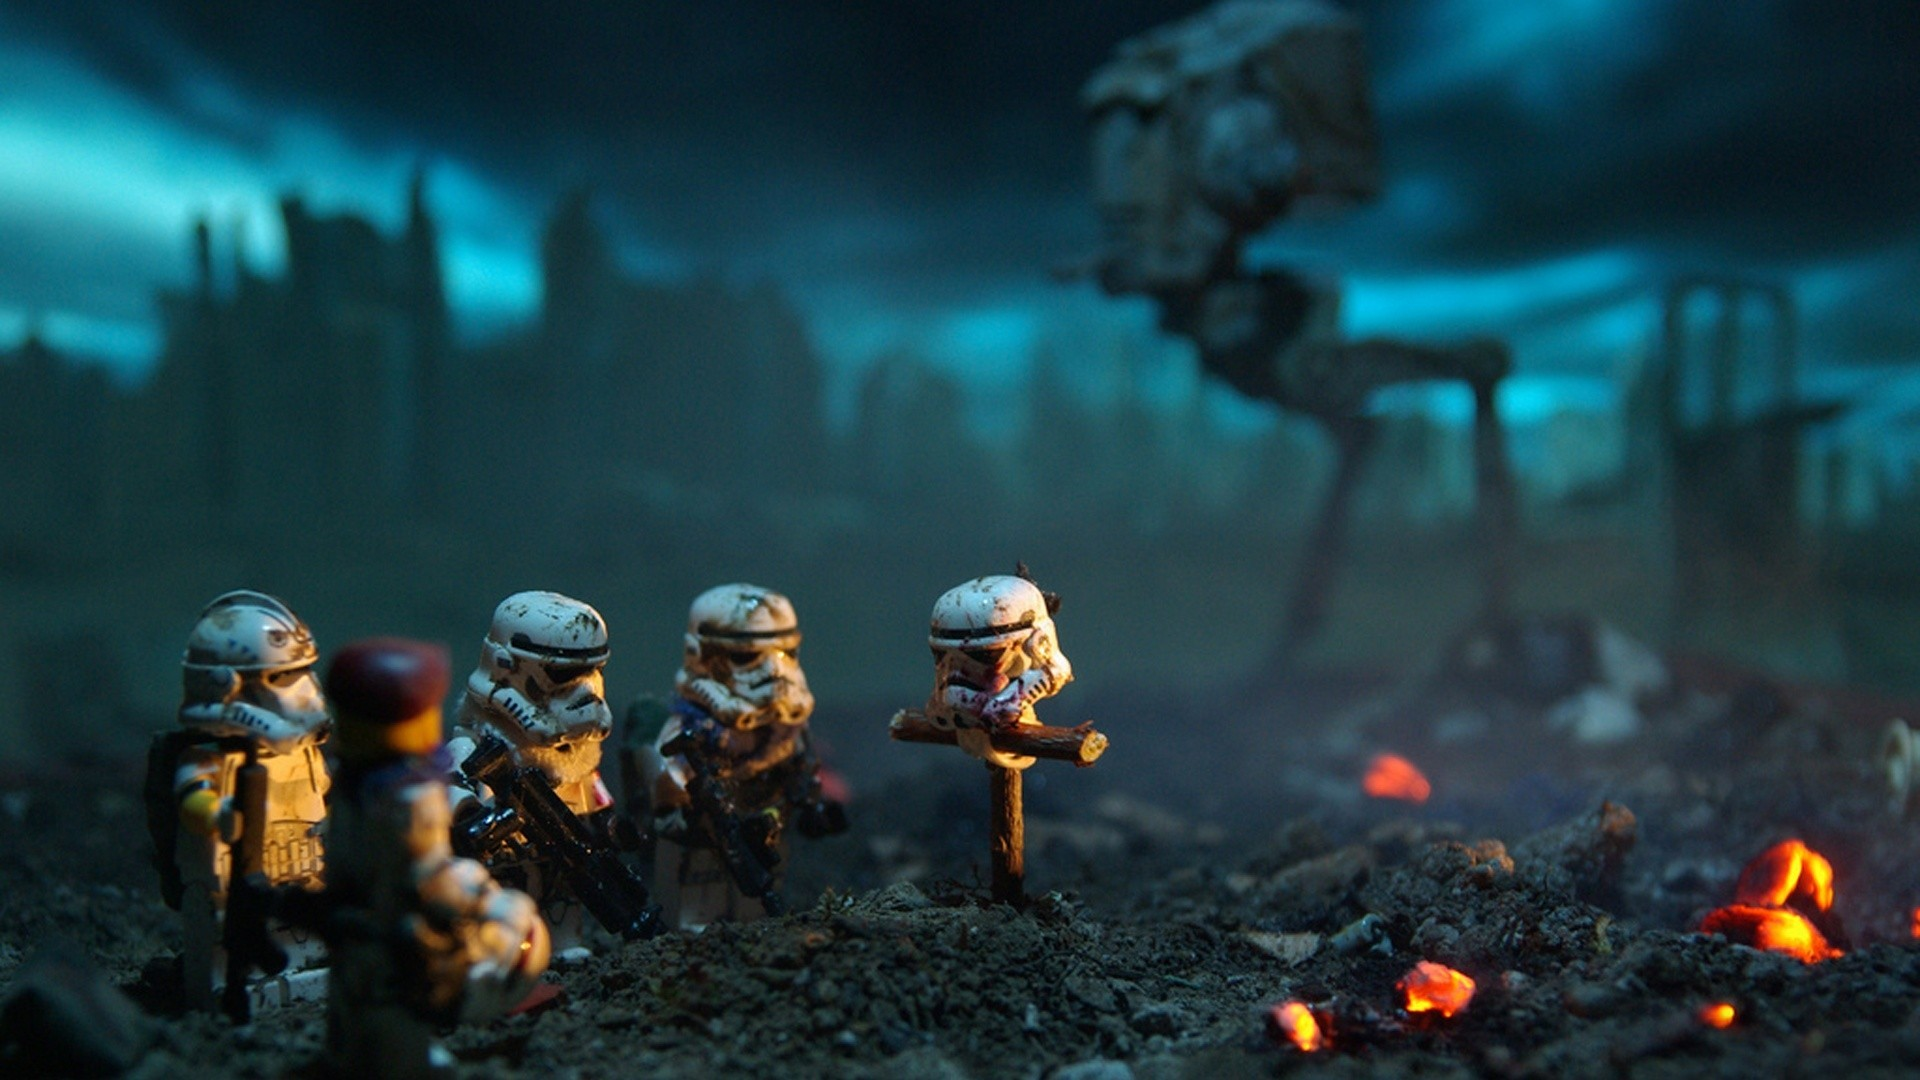 1920x1080 Star Wars Lego Cool Pictures HD Wallpaper Star Wars Lego Cool Pictures